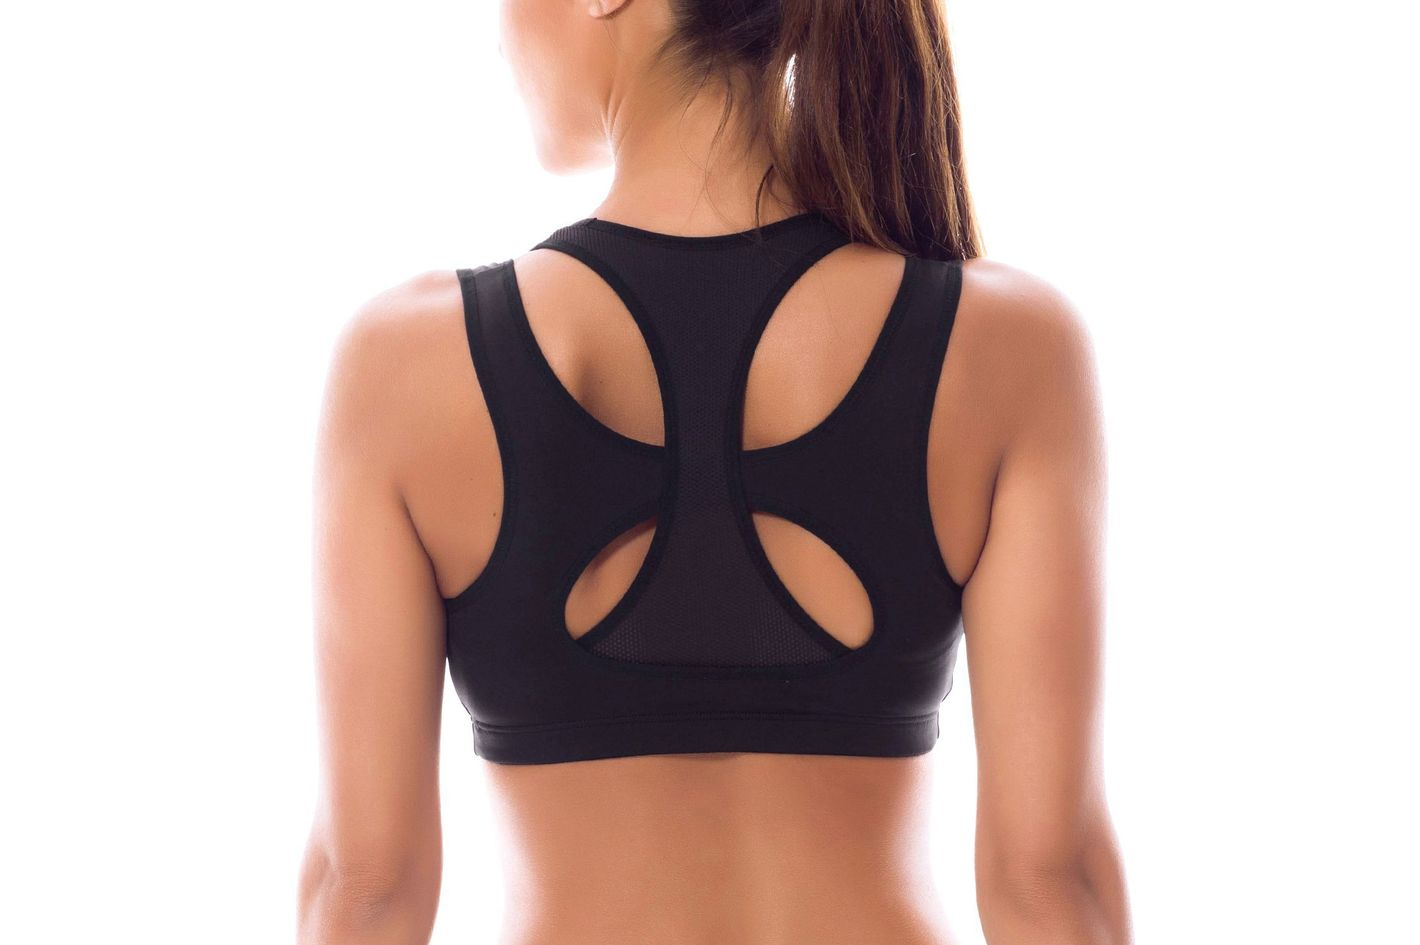 a641bd38fef SYROKAN Women s High Impact Support Wirefree Workout Racerback Sports Bra  Top